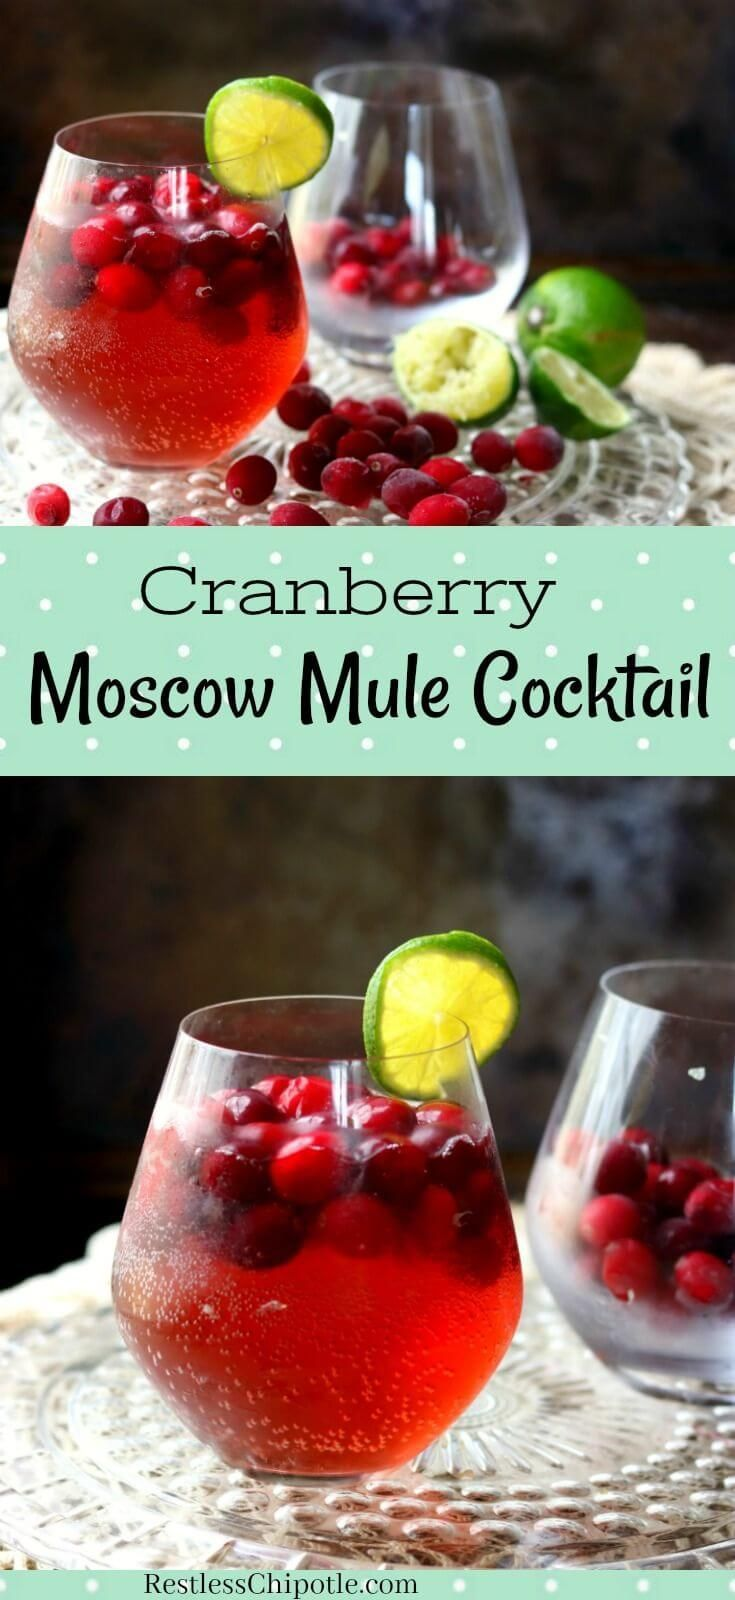 The cranberry Moscow mule is a seasonal twist on the ever popular Moscow Mule. Orange vodka and cranberries give this vodka cocktail plenty of holiday flavor and festive color. #SundaySupper #vodkacocktail #wintercocktail  via @Marye at Restless Chipotle